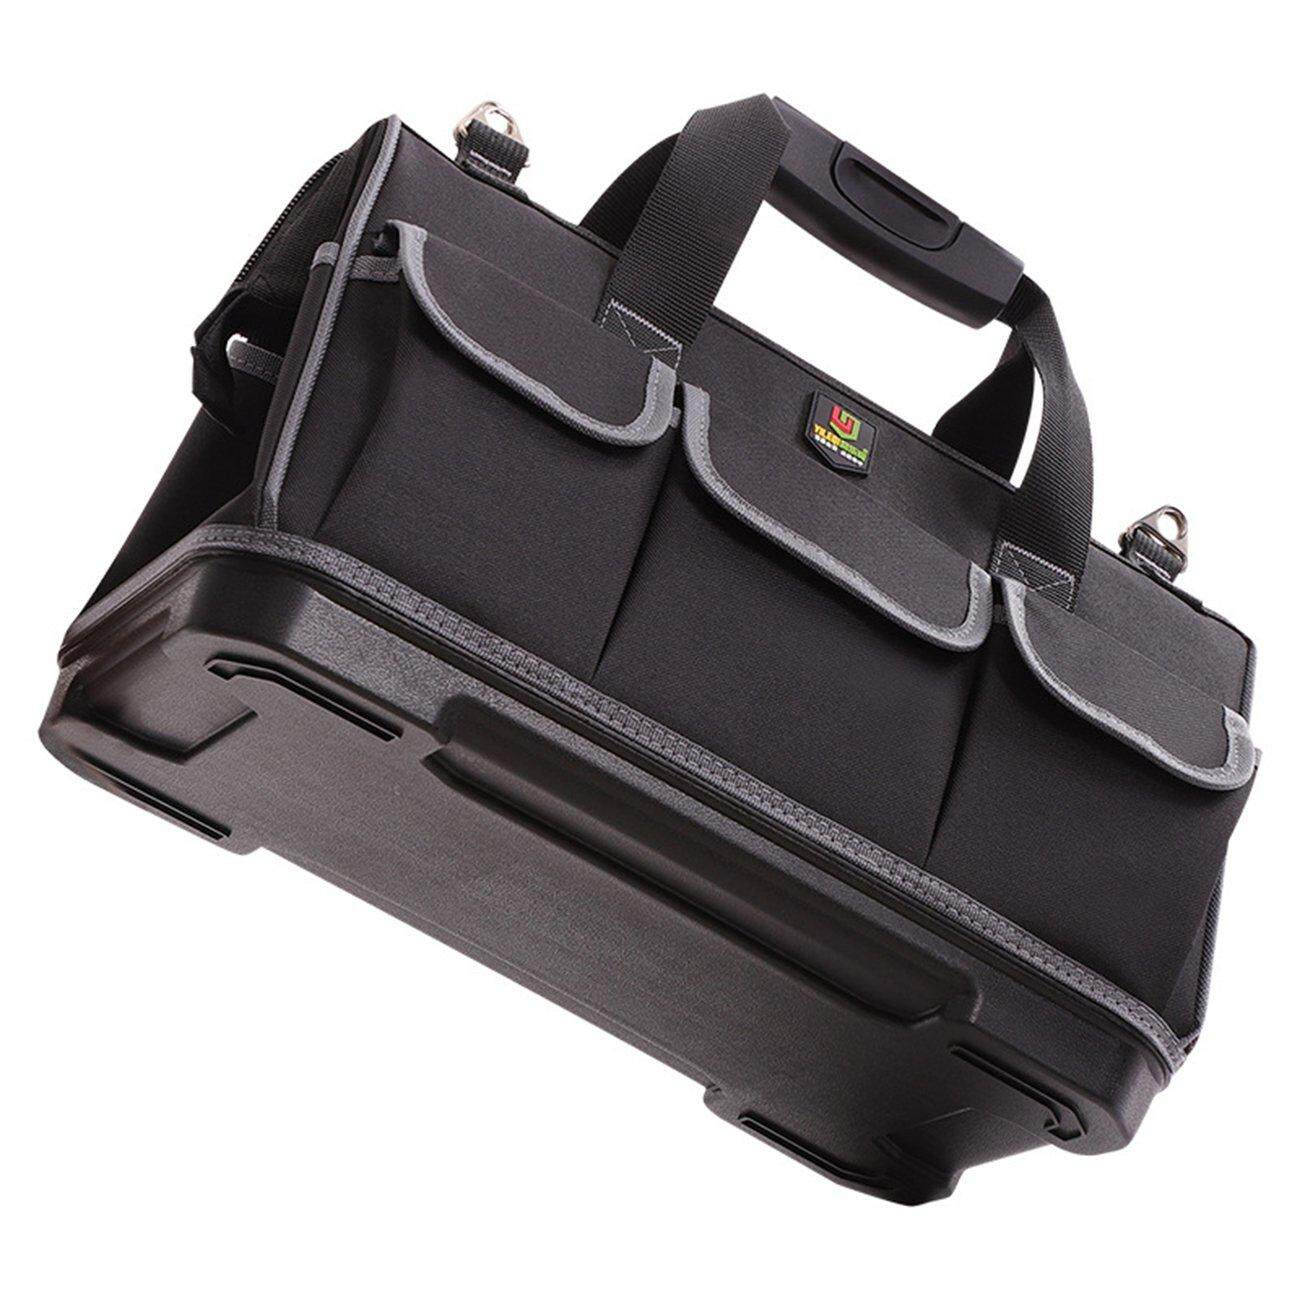 Most Popular D9 Hardware Repair Tool Bag Electrician Durable Mechanics Oxford Cloth Bag